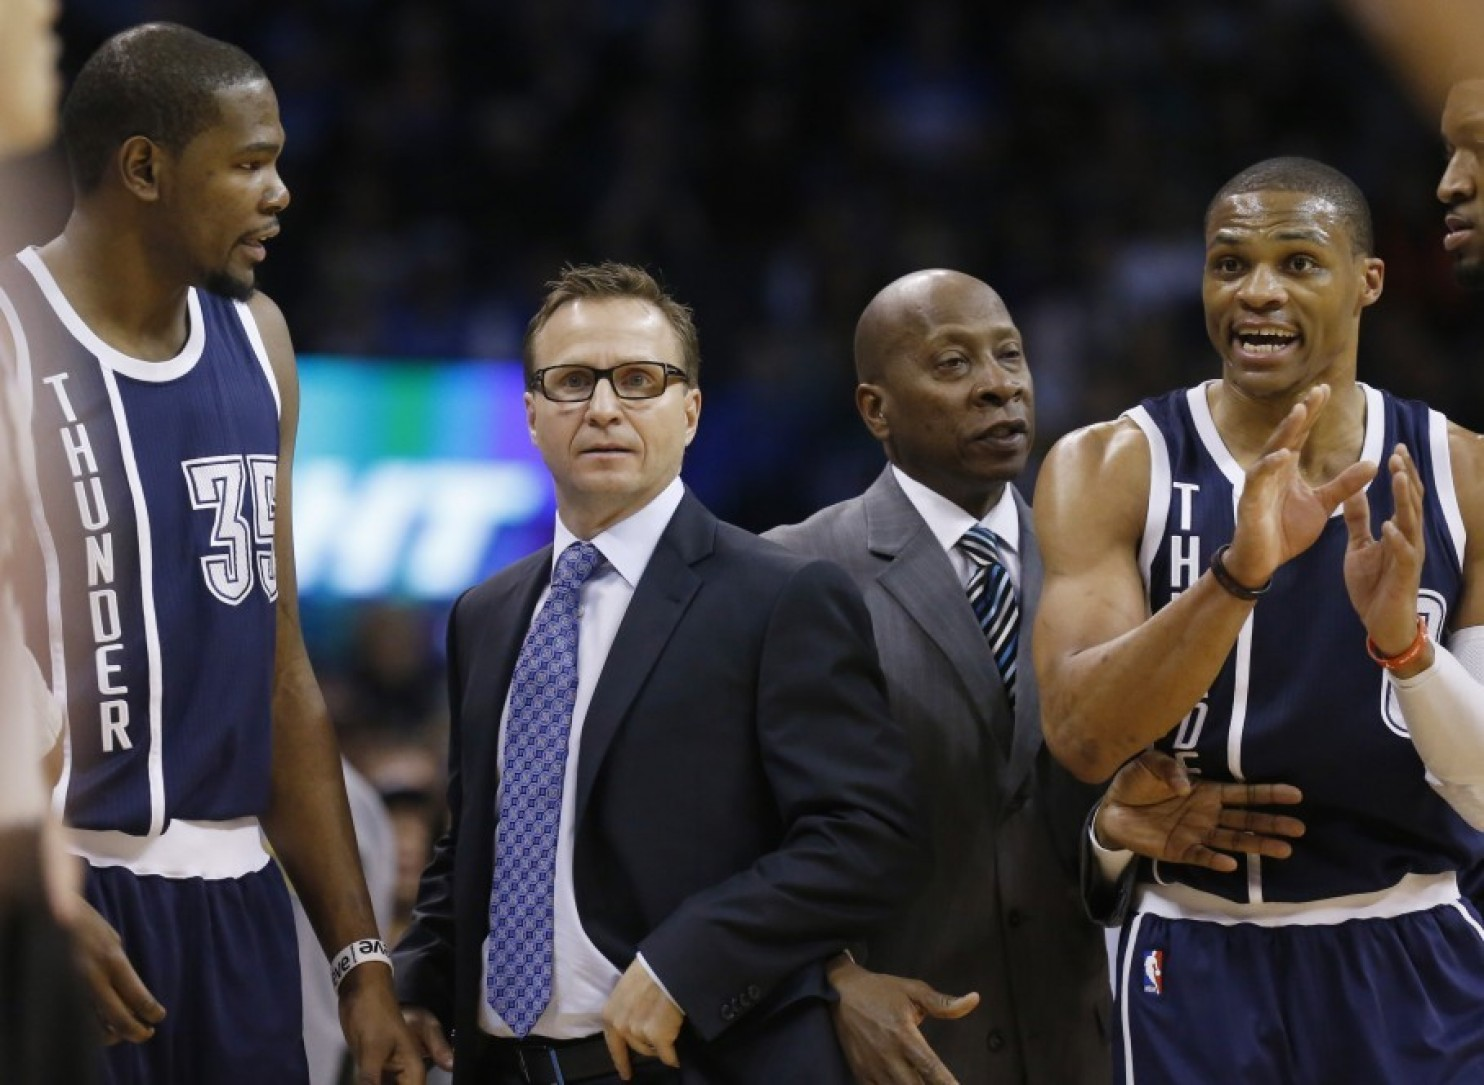 Kevin durant Scott Brooks et Russell Westbrook